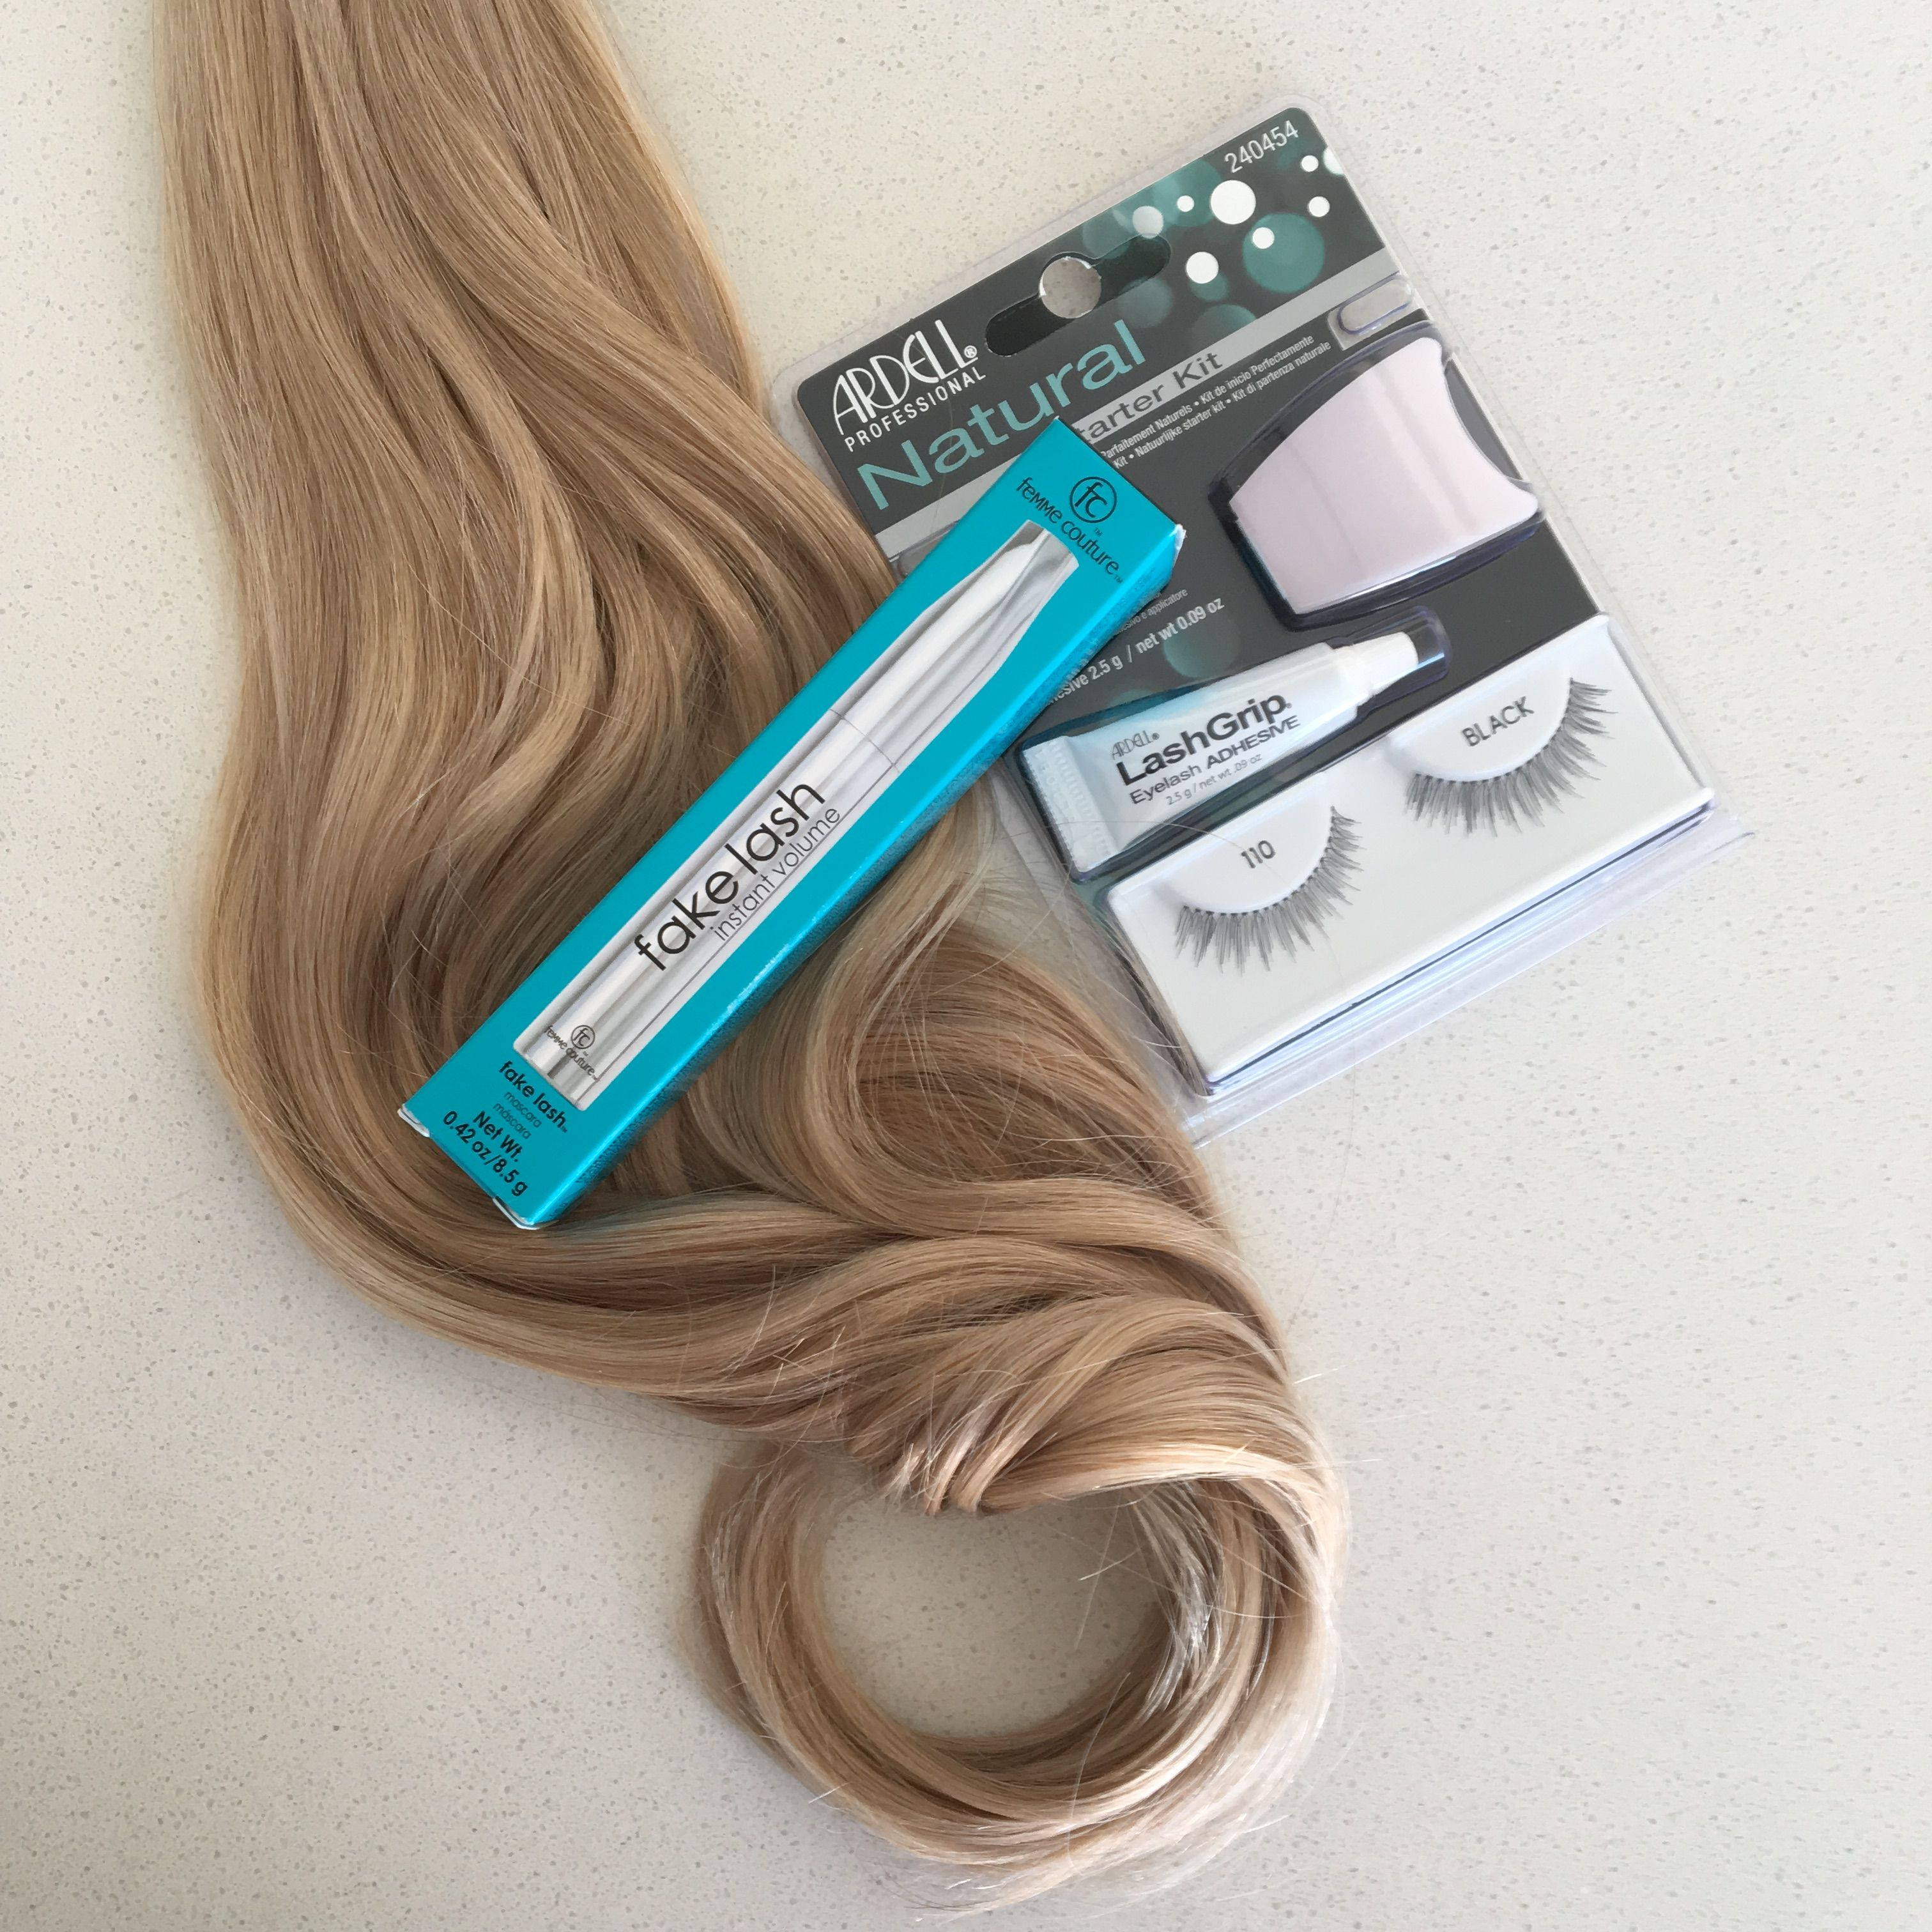 f2c0a8a1bac The perfect #weekend essentials—100% Remy Human Hair + false lashes ...